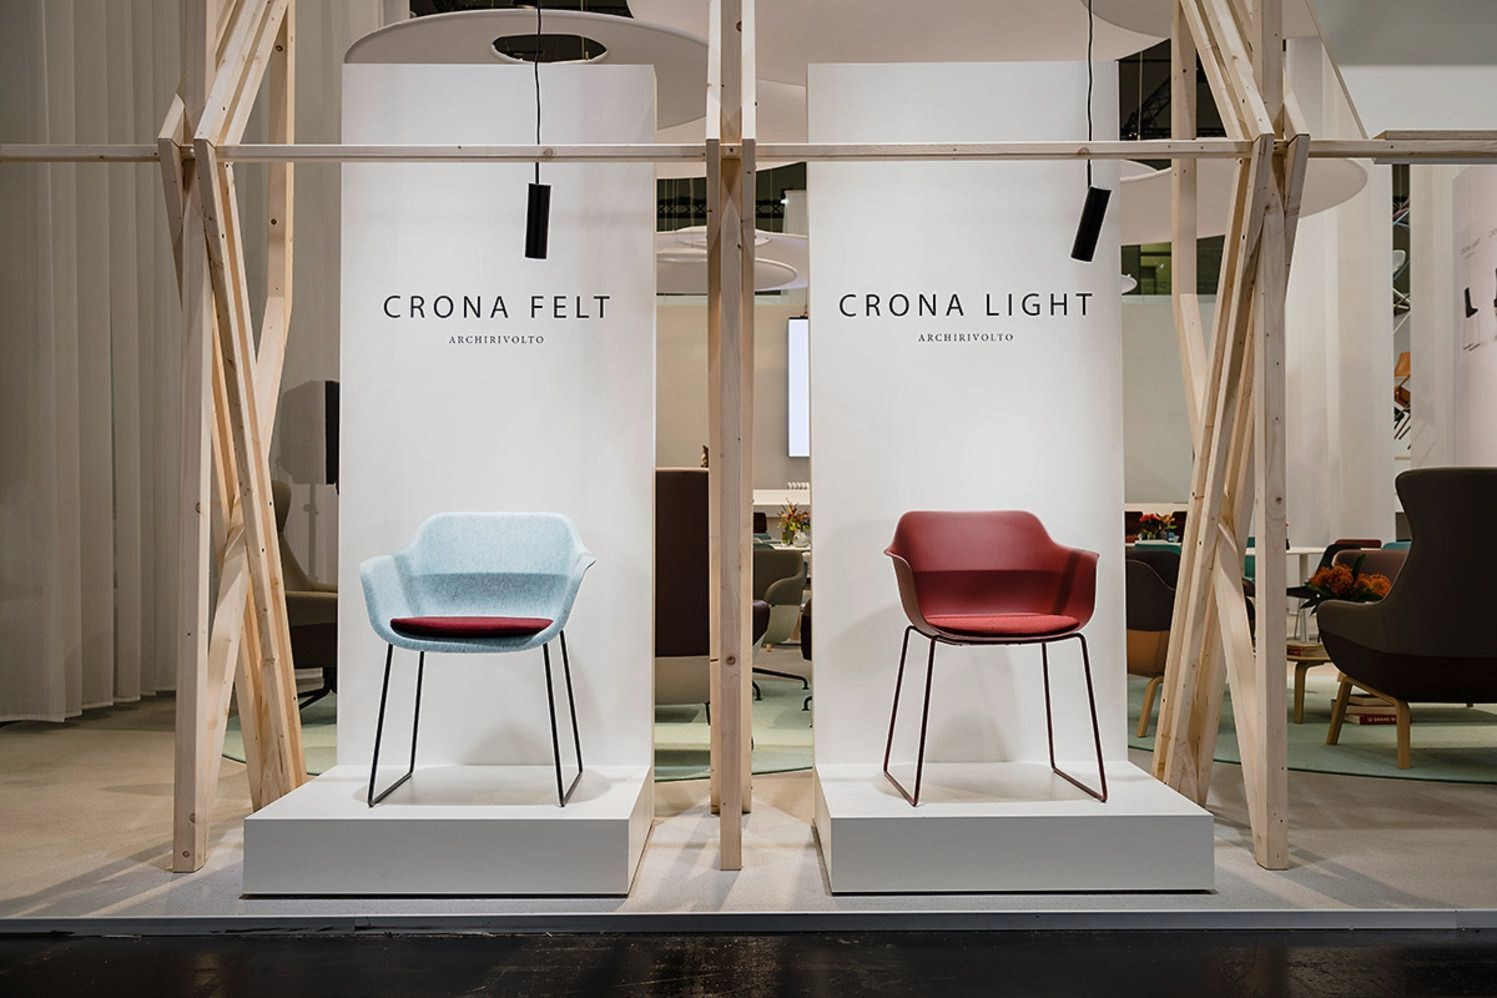 https://elonahome.com/wp-content/uploads/2020/07/Open-style-exhibition-stand-of-Brunner-in-Orgatec-2016-showcasing-products-in-new-inviting-view-and-structure-arrangement-10.jpg